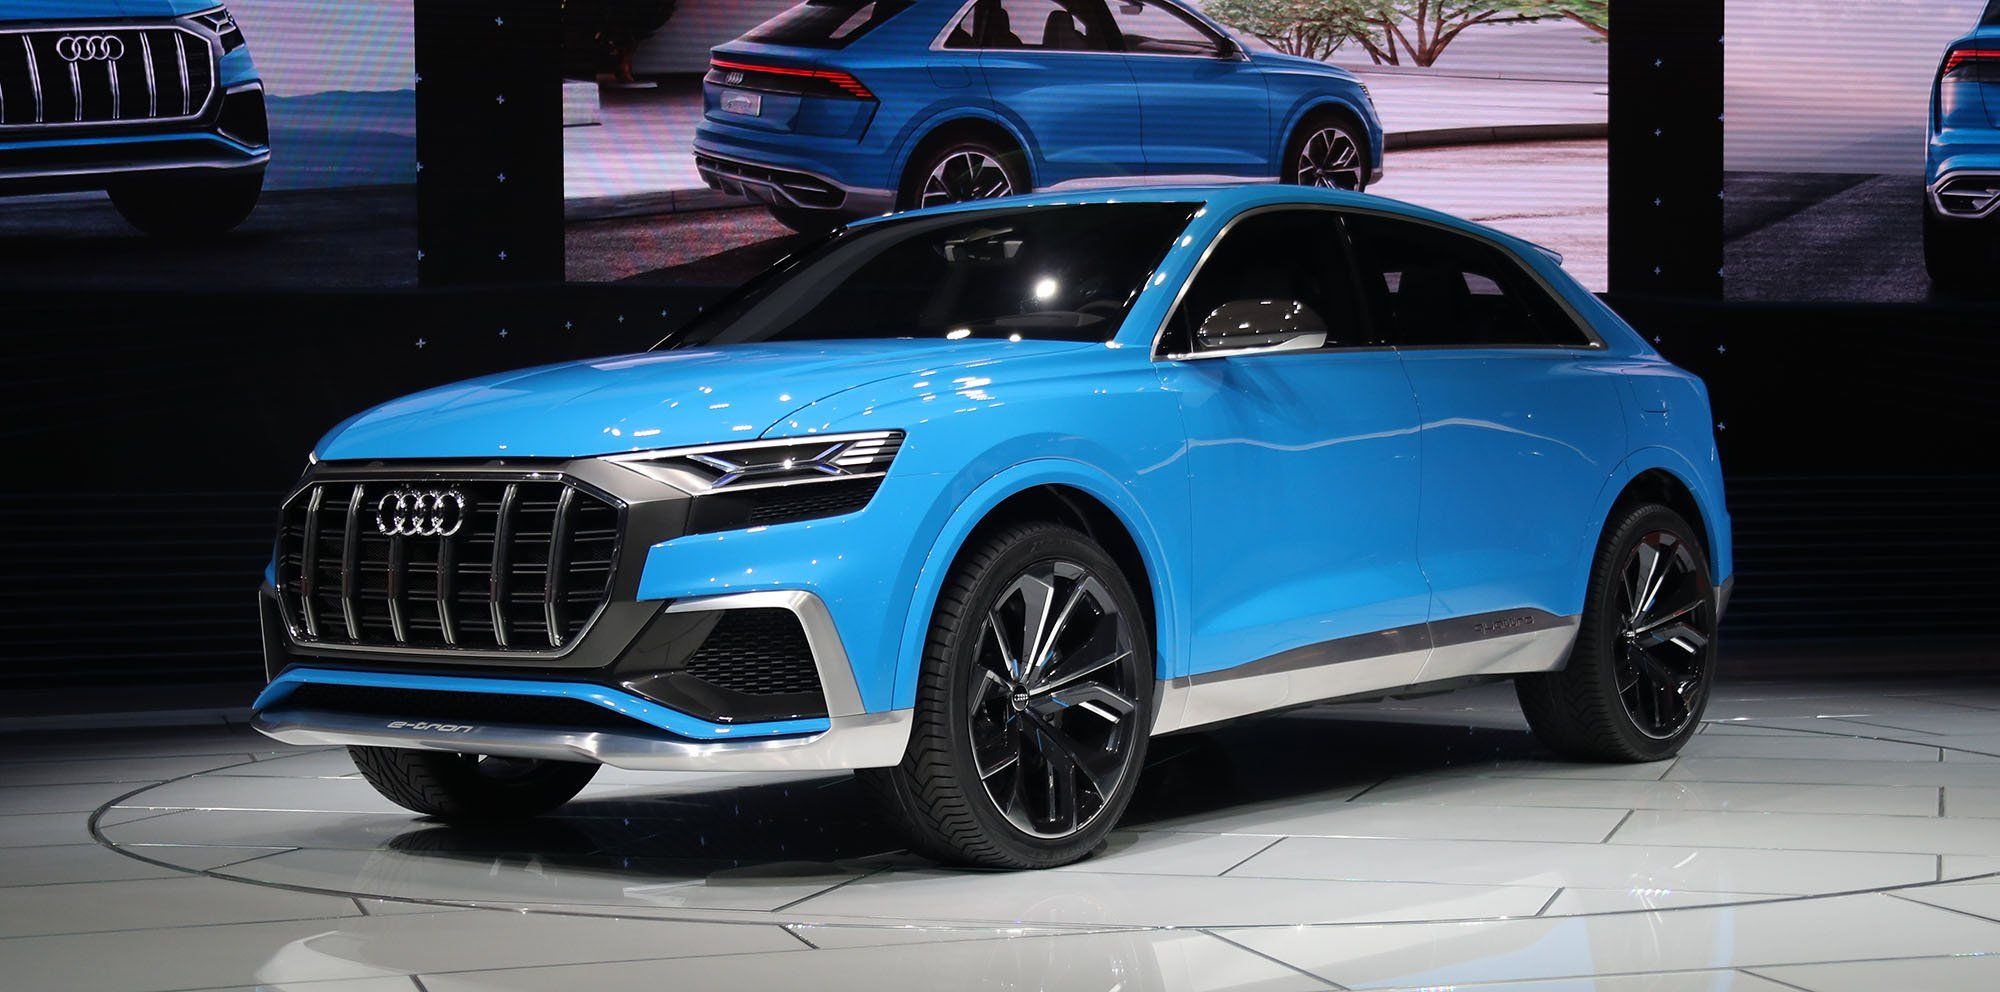 Audi q8 sport suv concept hybrid 2018 audi q8 styling one would tend to think that